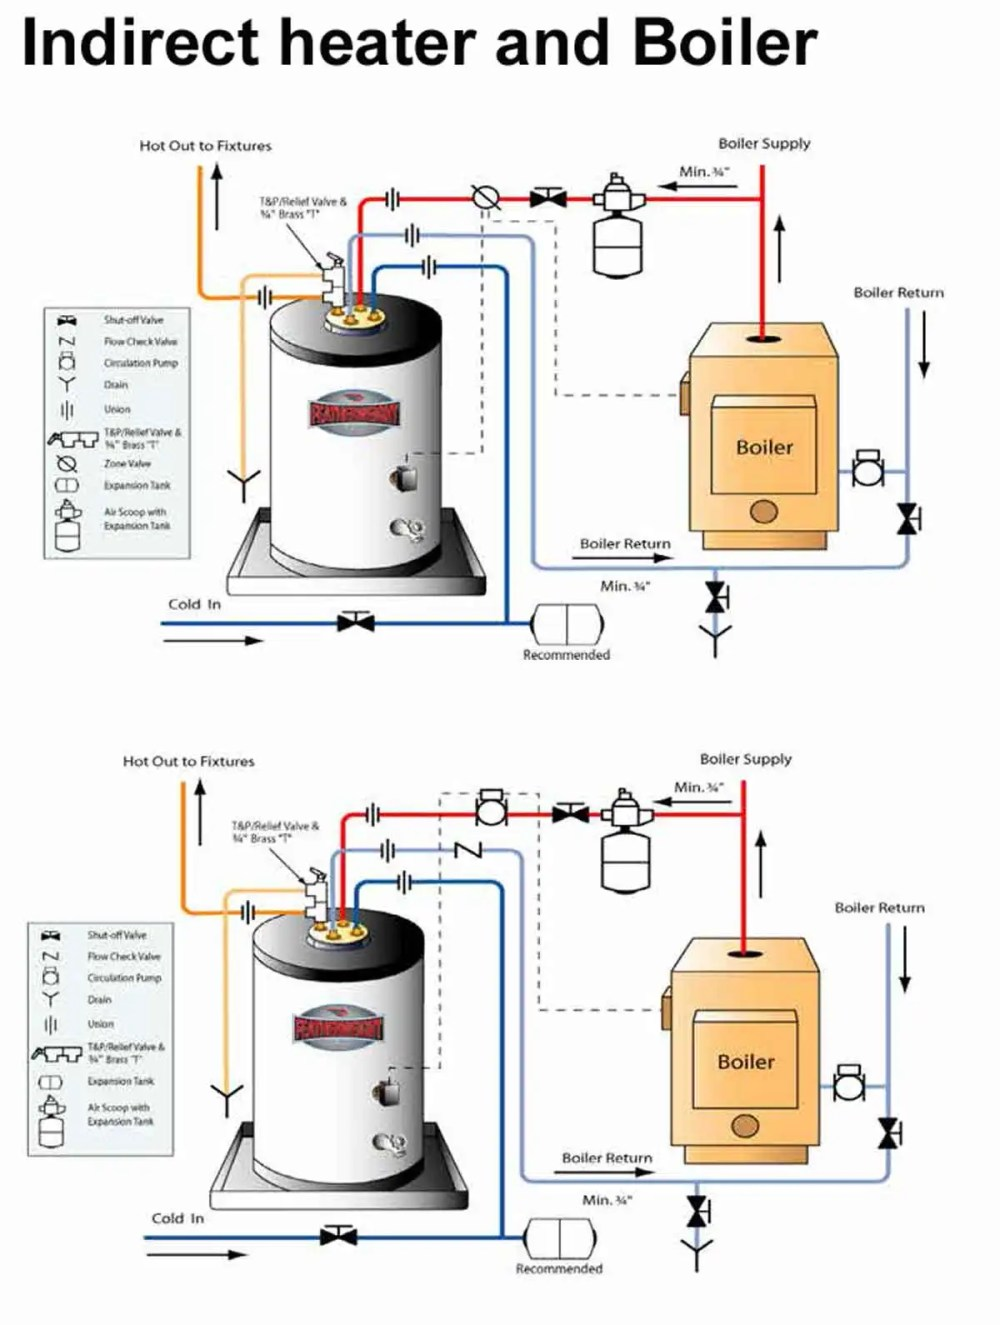 medium resolution of how to install two water heaters fig 1 shows overview of boiler and indirect heater operation